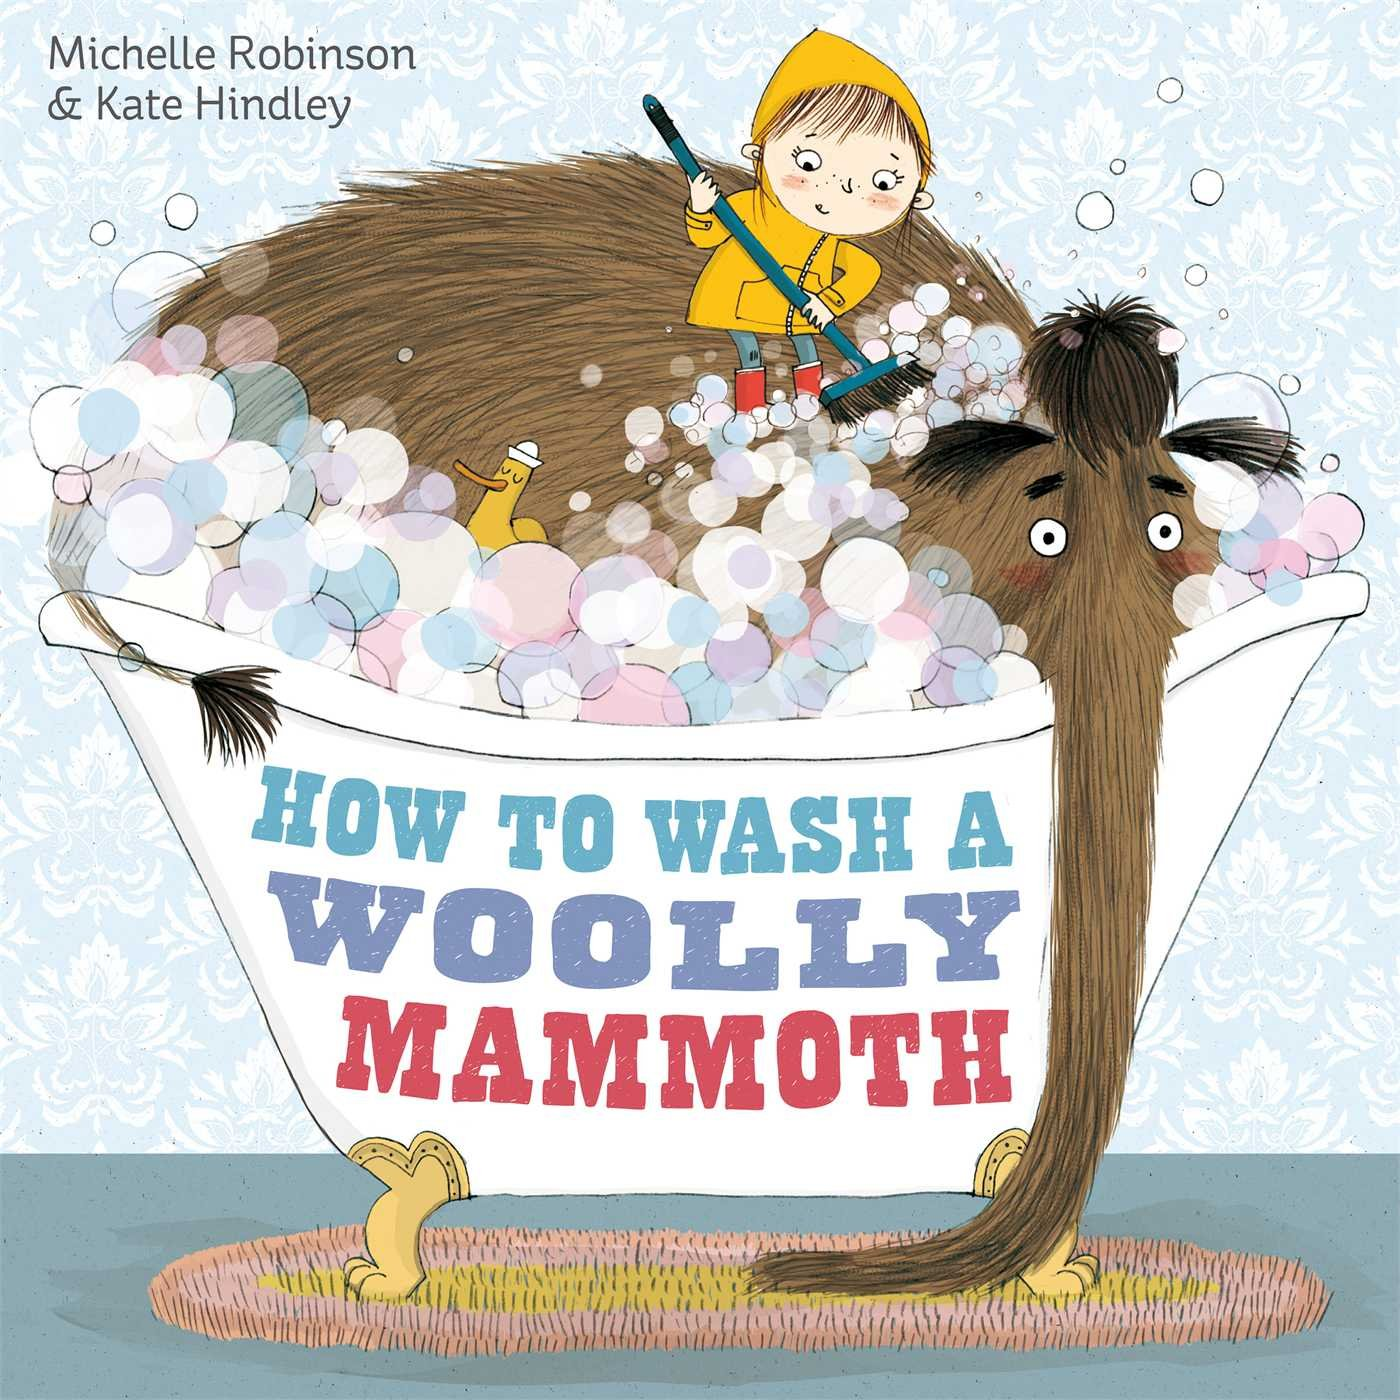 How to Wash a Woolly Mammoth: Amazon.co.uk: Robinson, Michelle, Hindley,  Kate: 9780857075802: Books